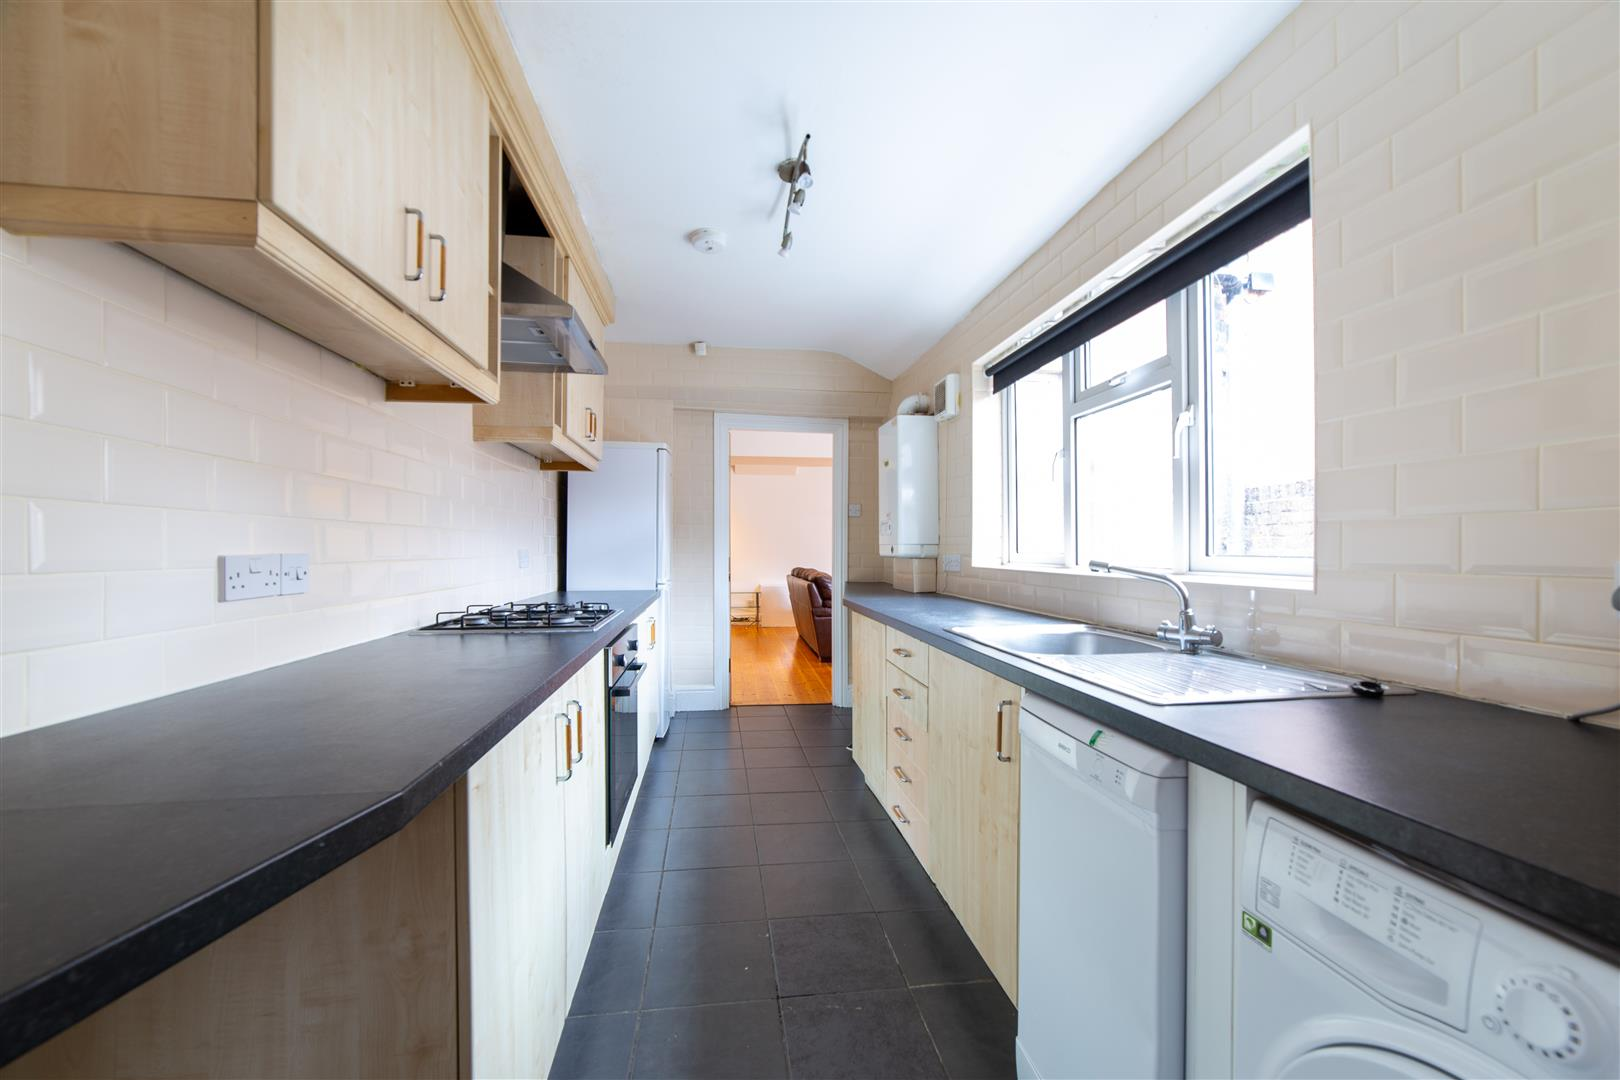 5 bed terraced house to rent in Newcastle Upon Tyne, NE6 5SN 0